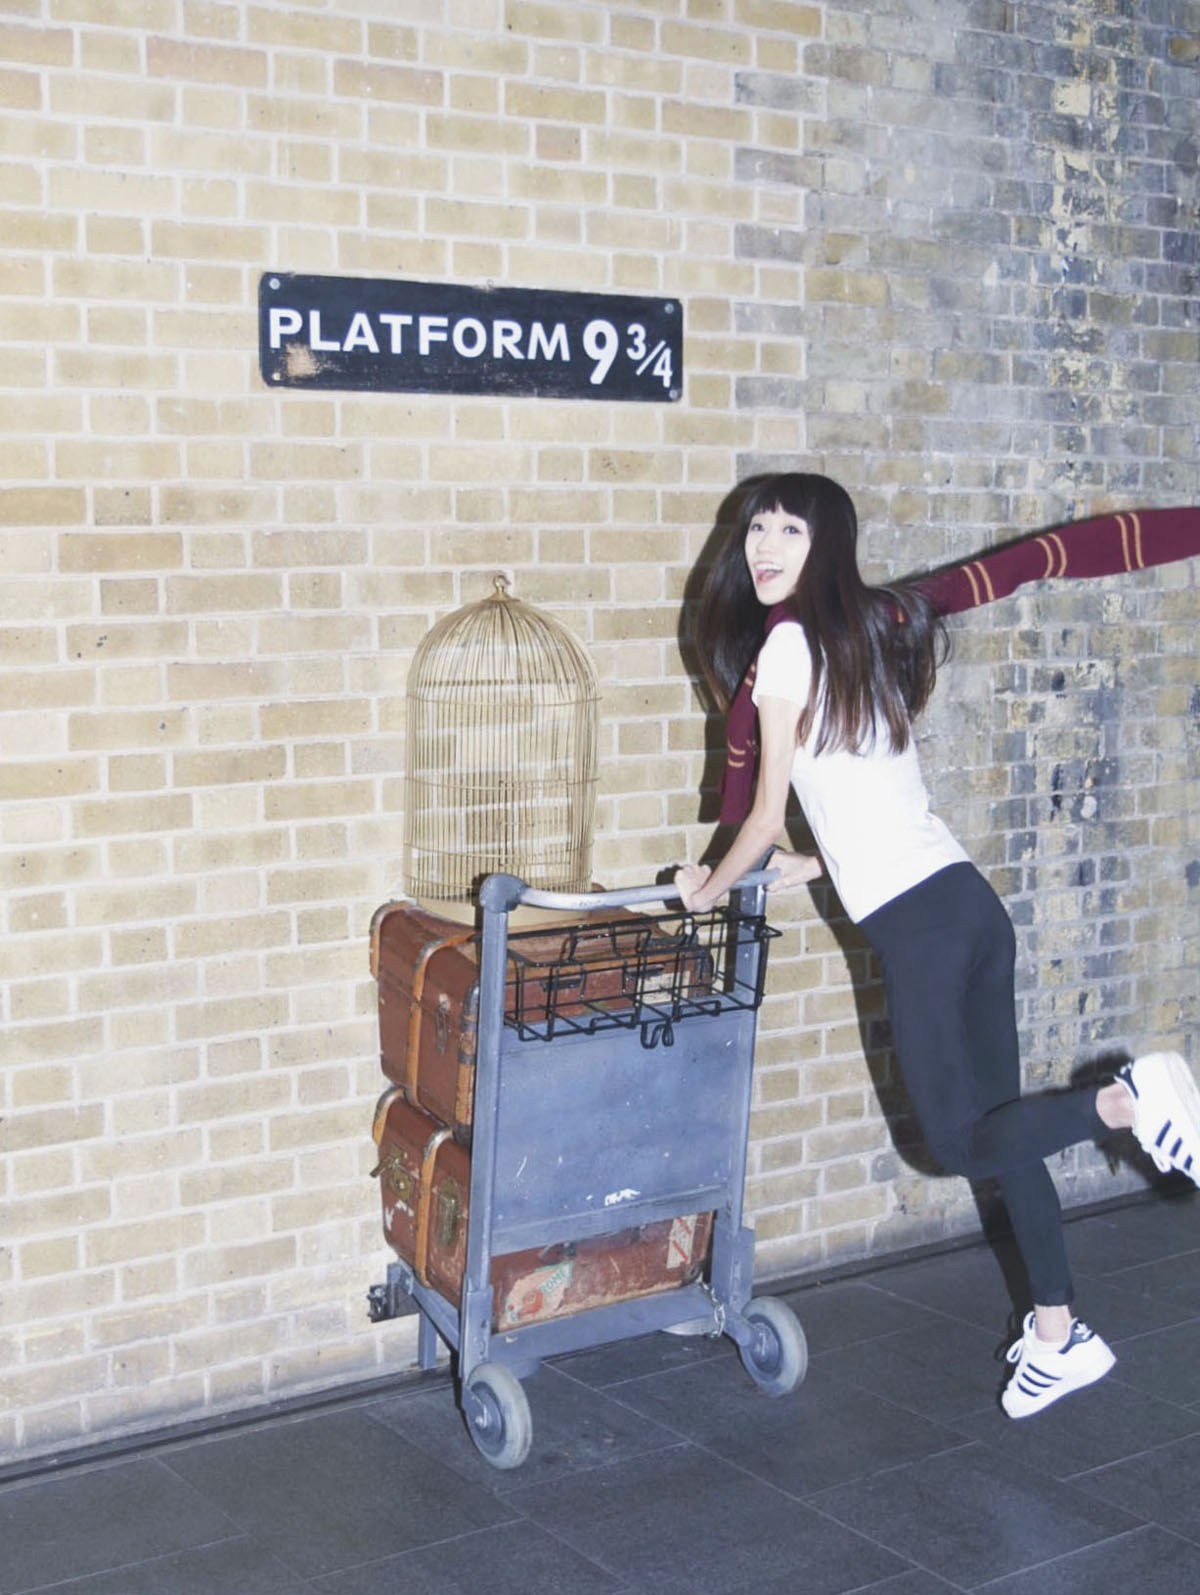 Travelling solo to London - Platform 9 3/4 at King's Cross Station